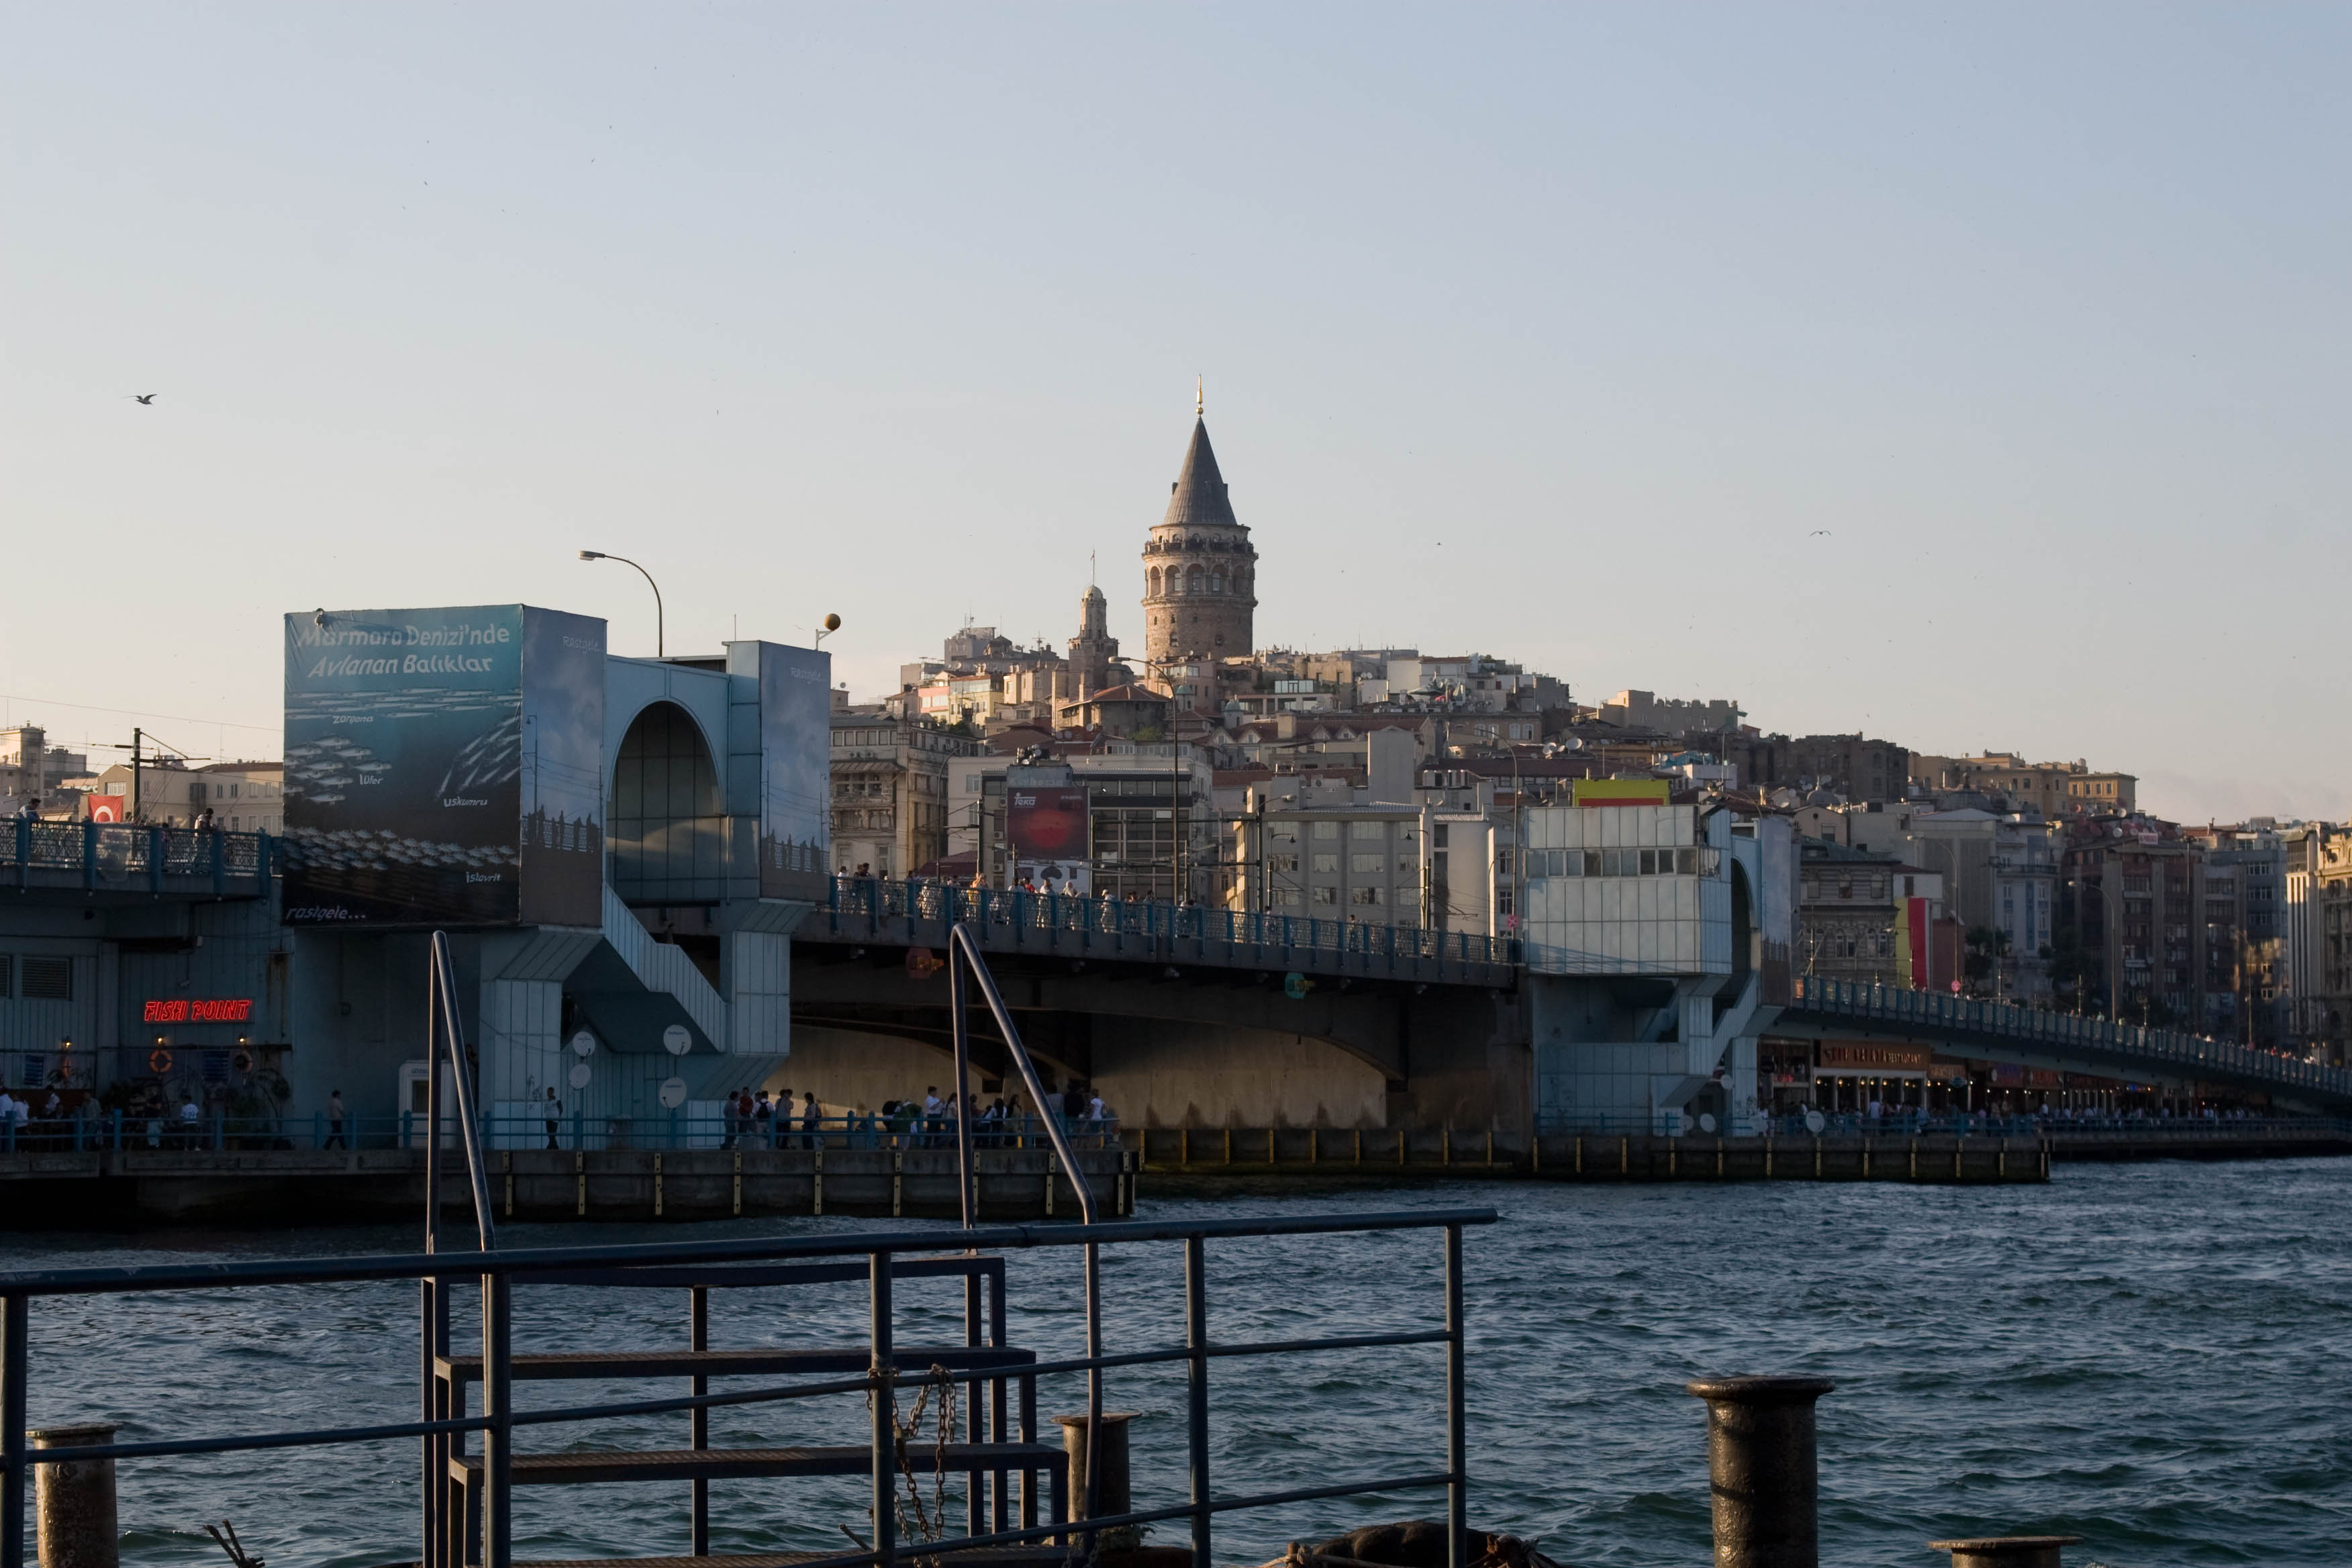 Galata Bridge - Bridge in Istanbul - Thousand Wonders